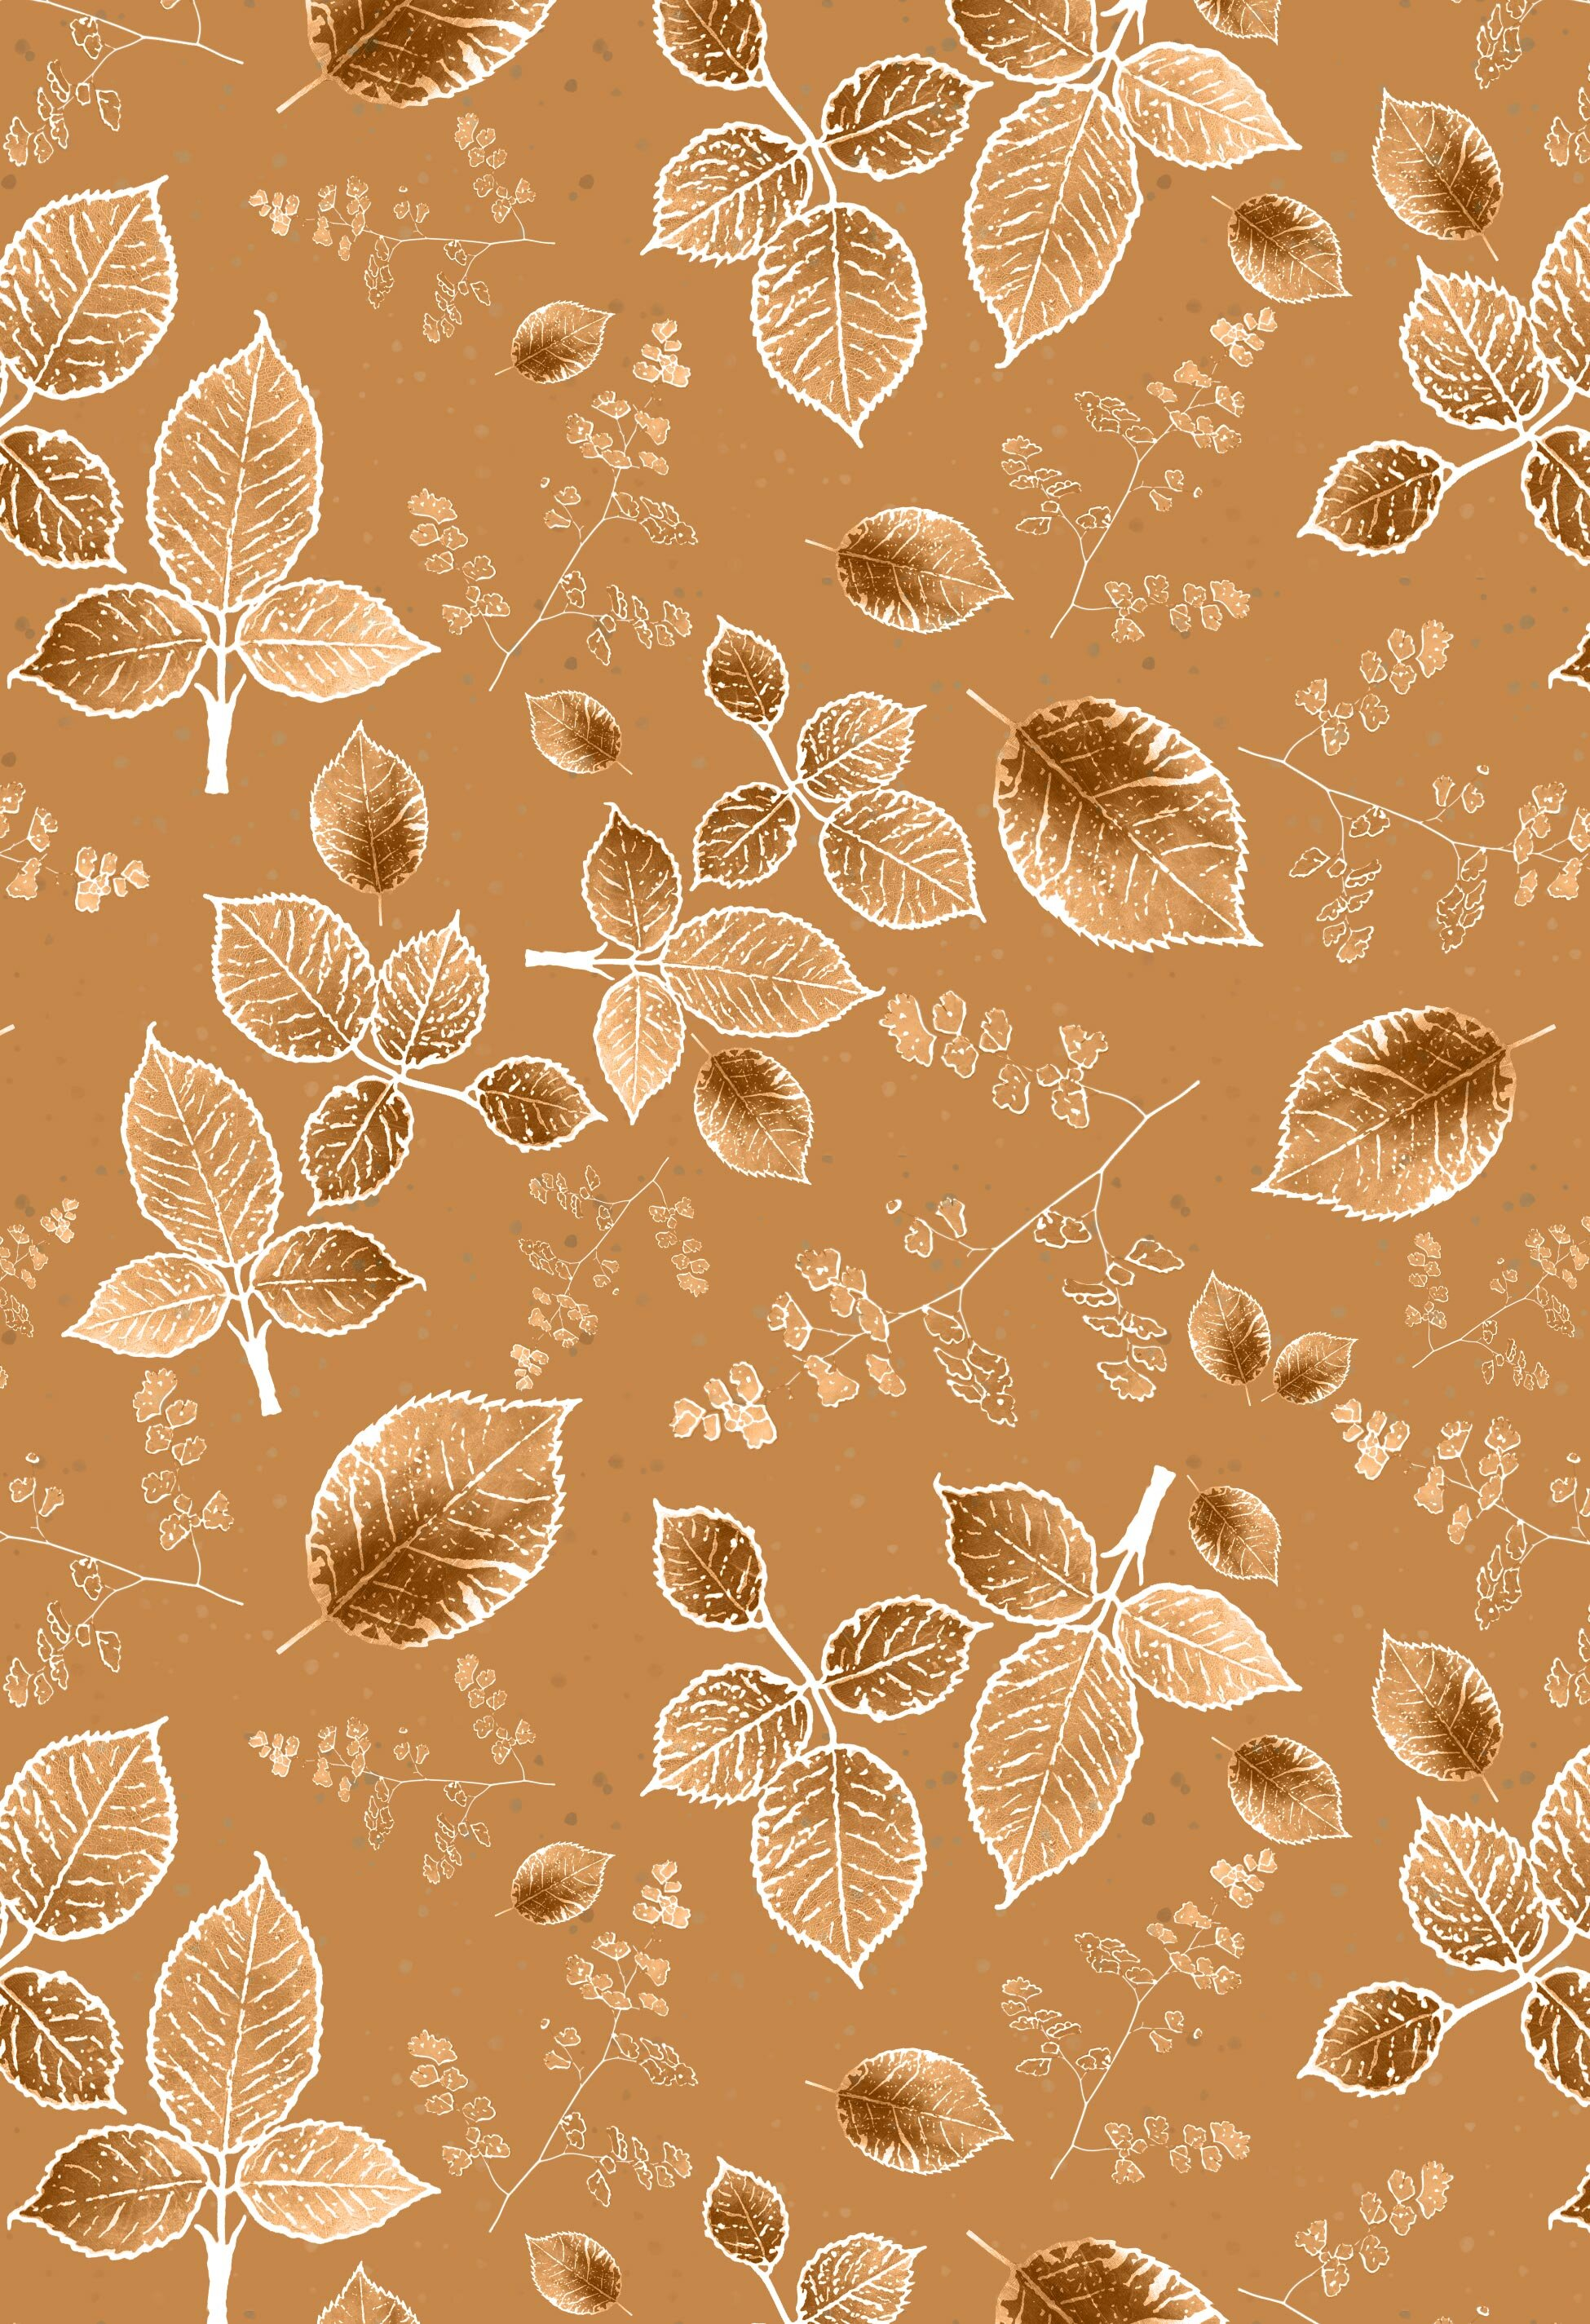 scattered rose monotone background autumn gold.jpg